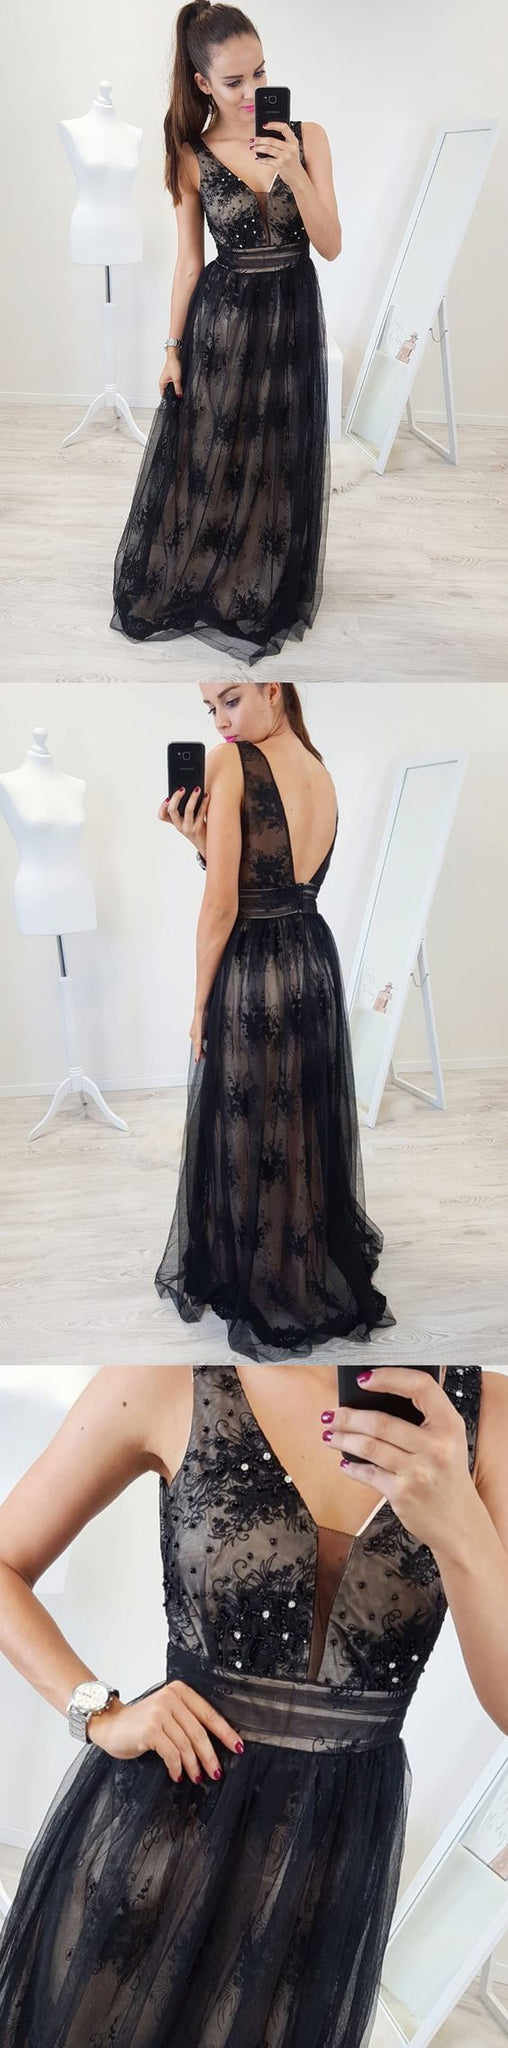 A-Line V-Neck Backless Floor-Length Black Prom Dress with Appliques Beading by prom dresses, Y0448